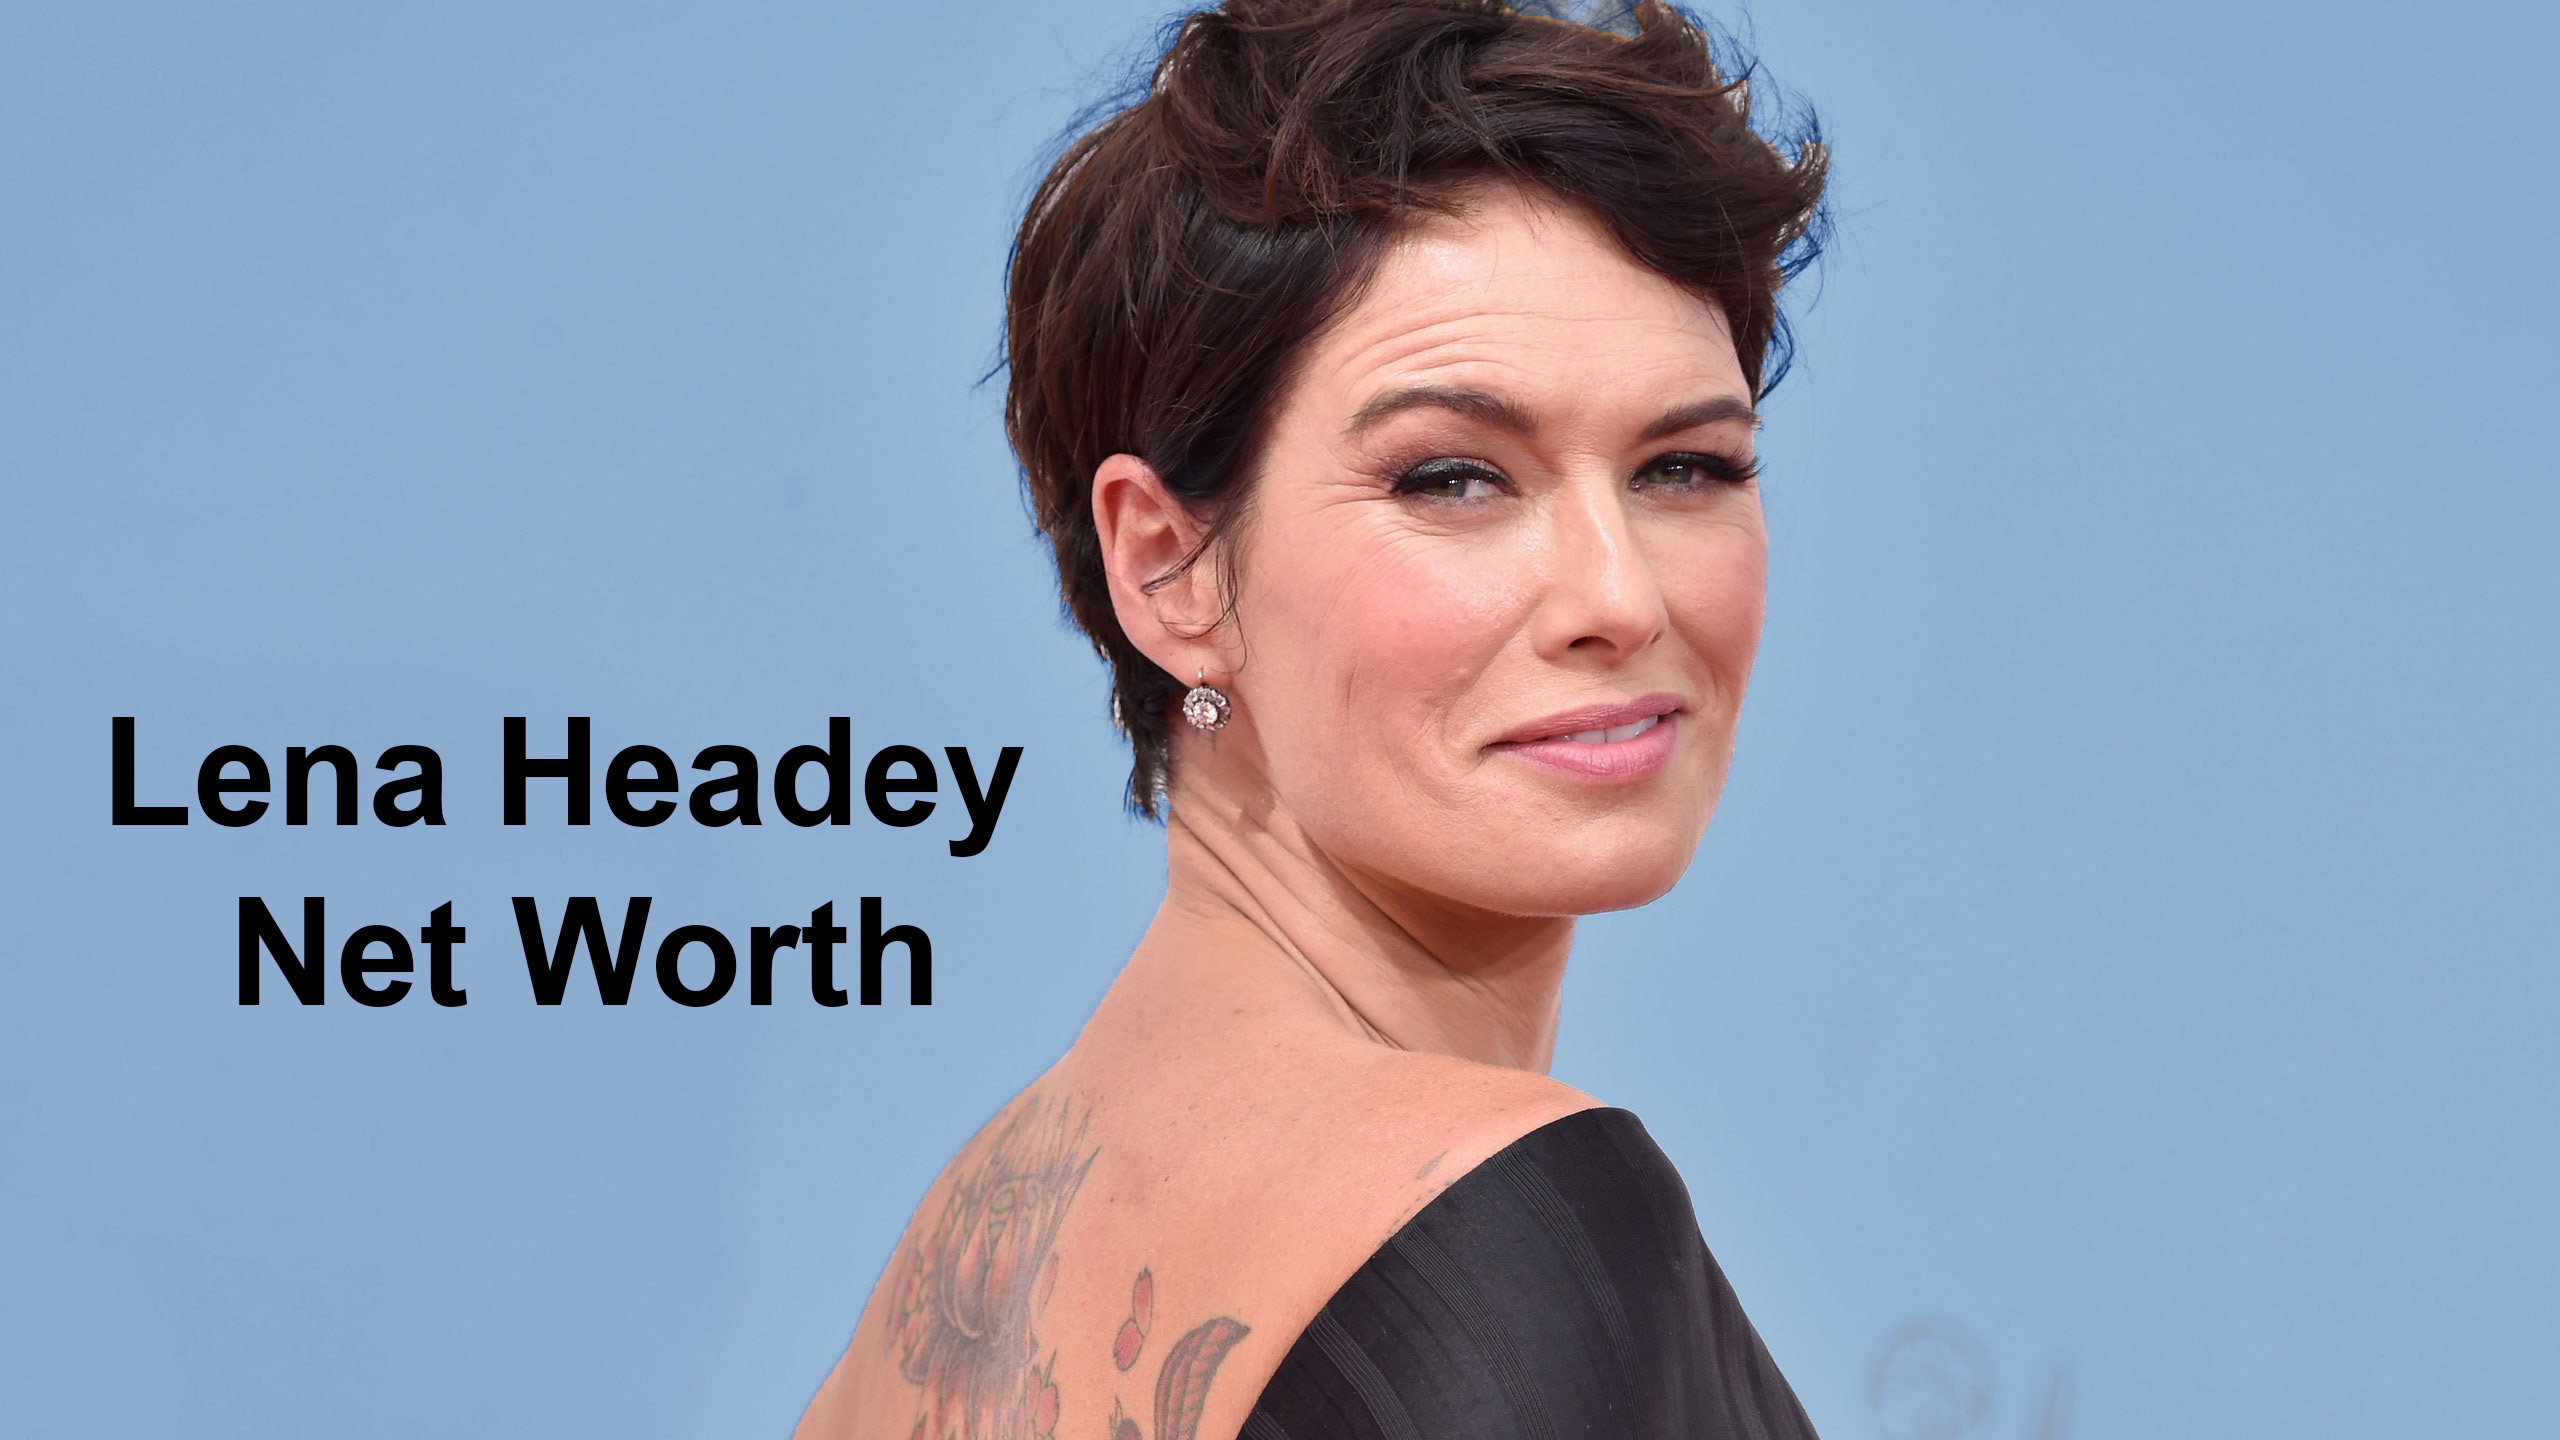 Lena Headey Net Worth